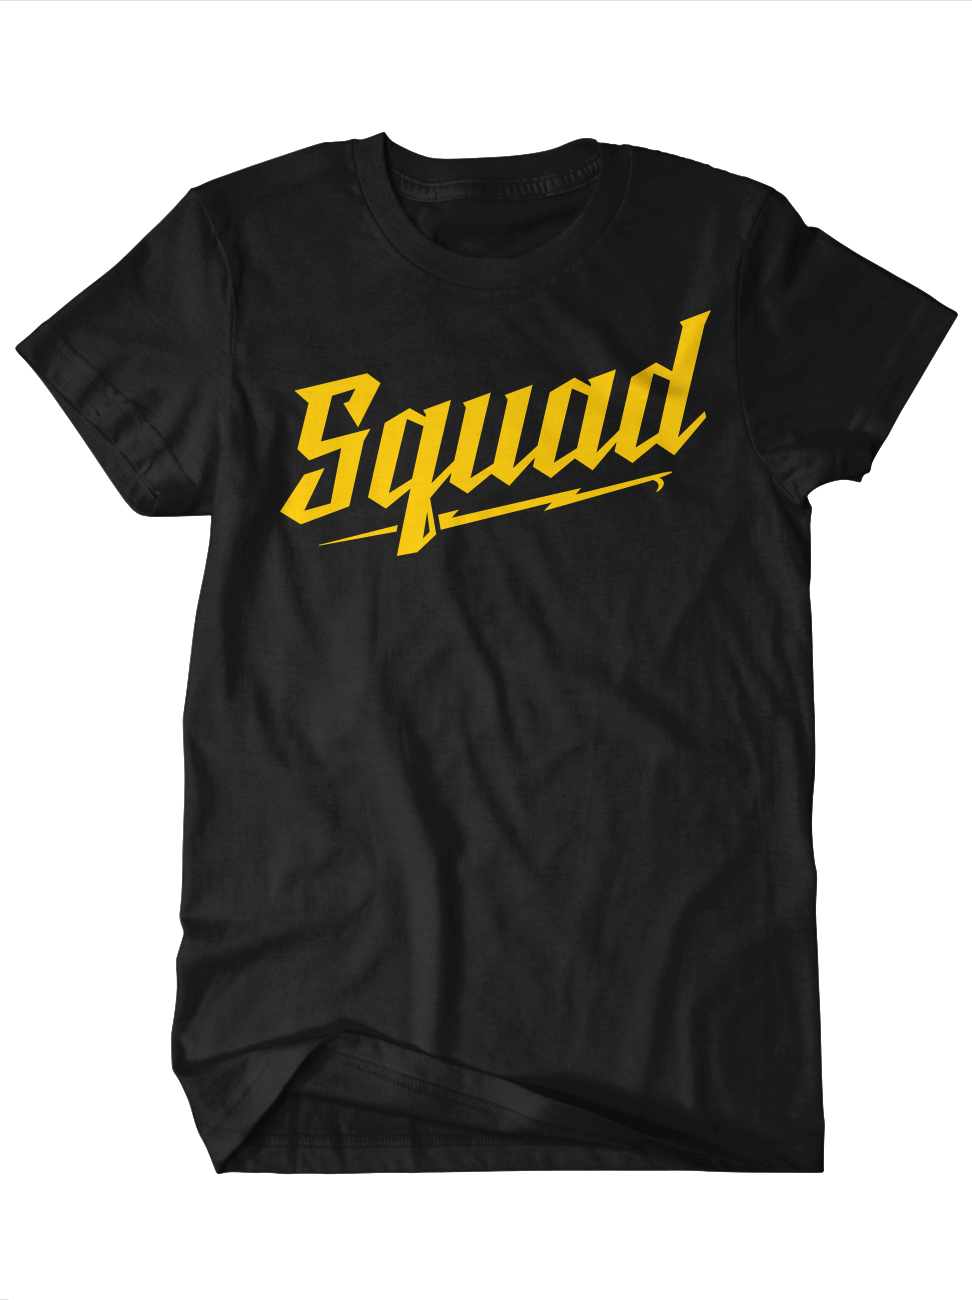 The Squad Tee